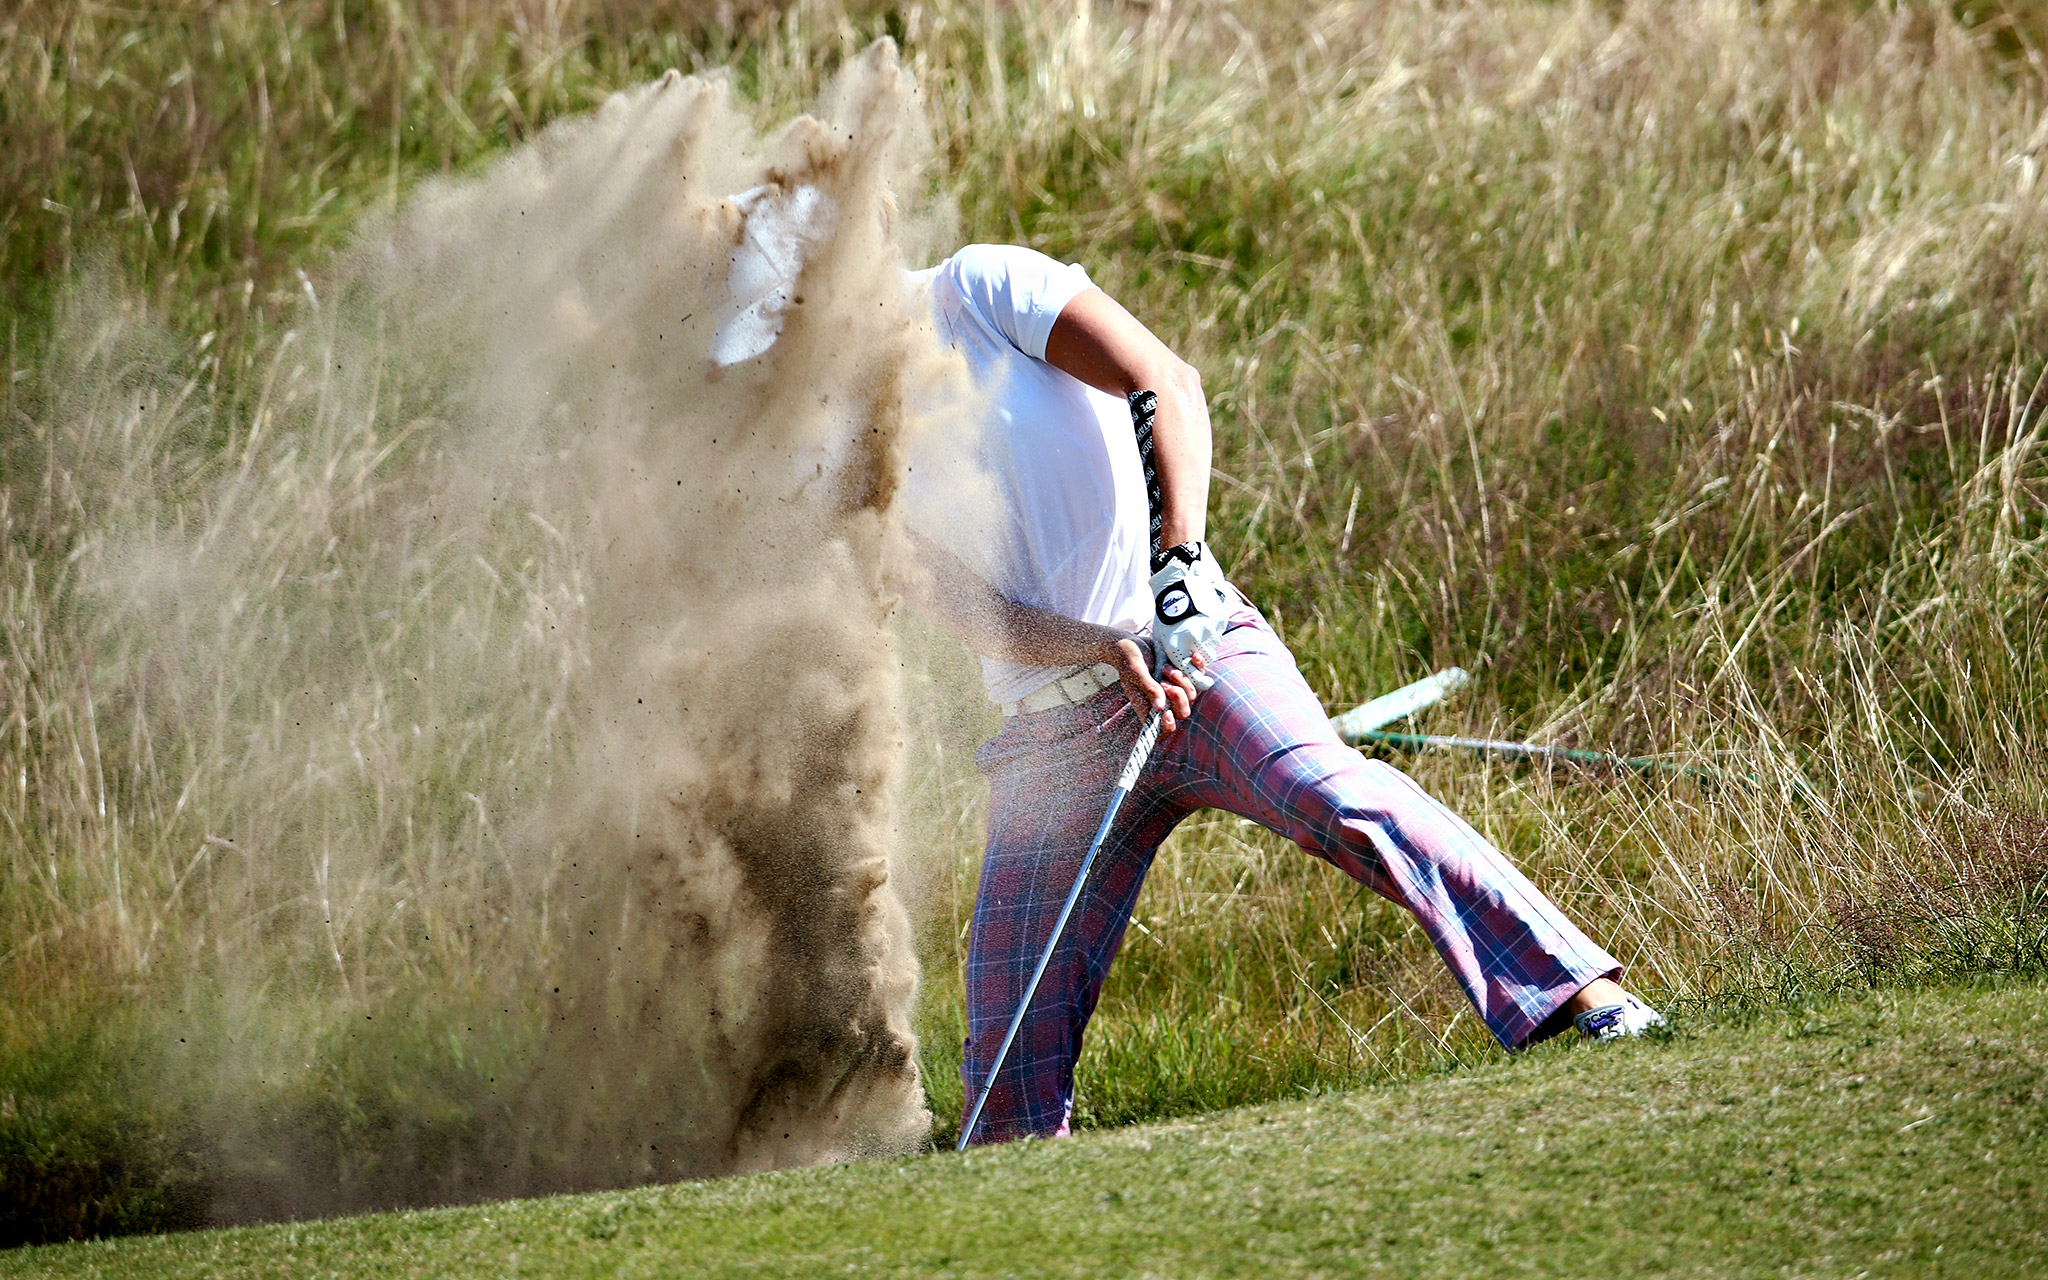 Brittany Lang of the United States hits from a bunker on the 15th hole during the first round of the Ricoh Women's British Open at Royal Birkdale on in Southport, England.